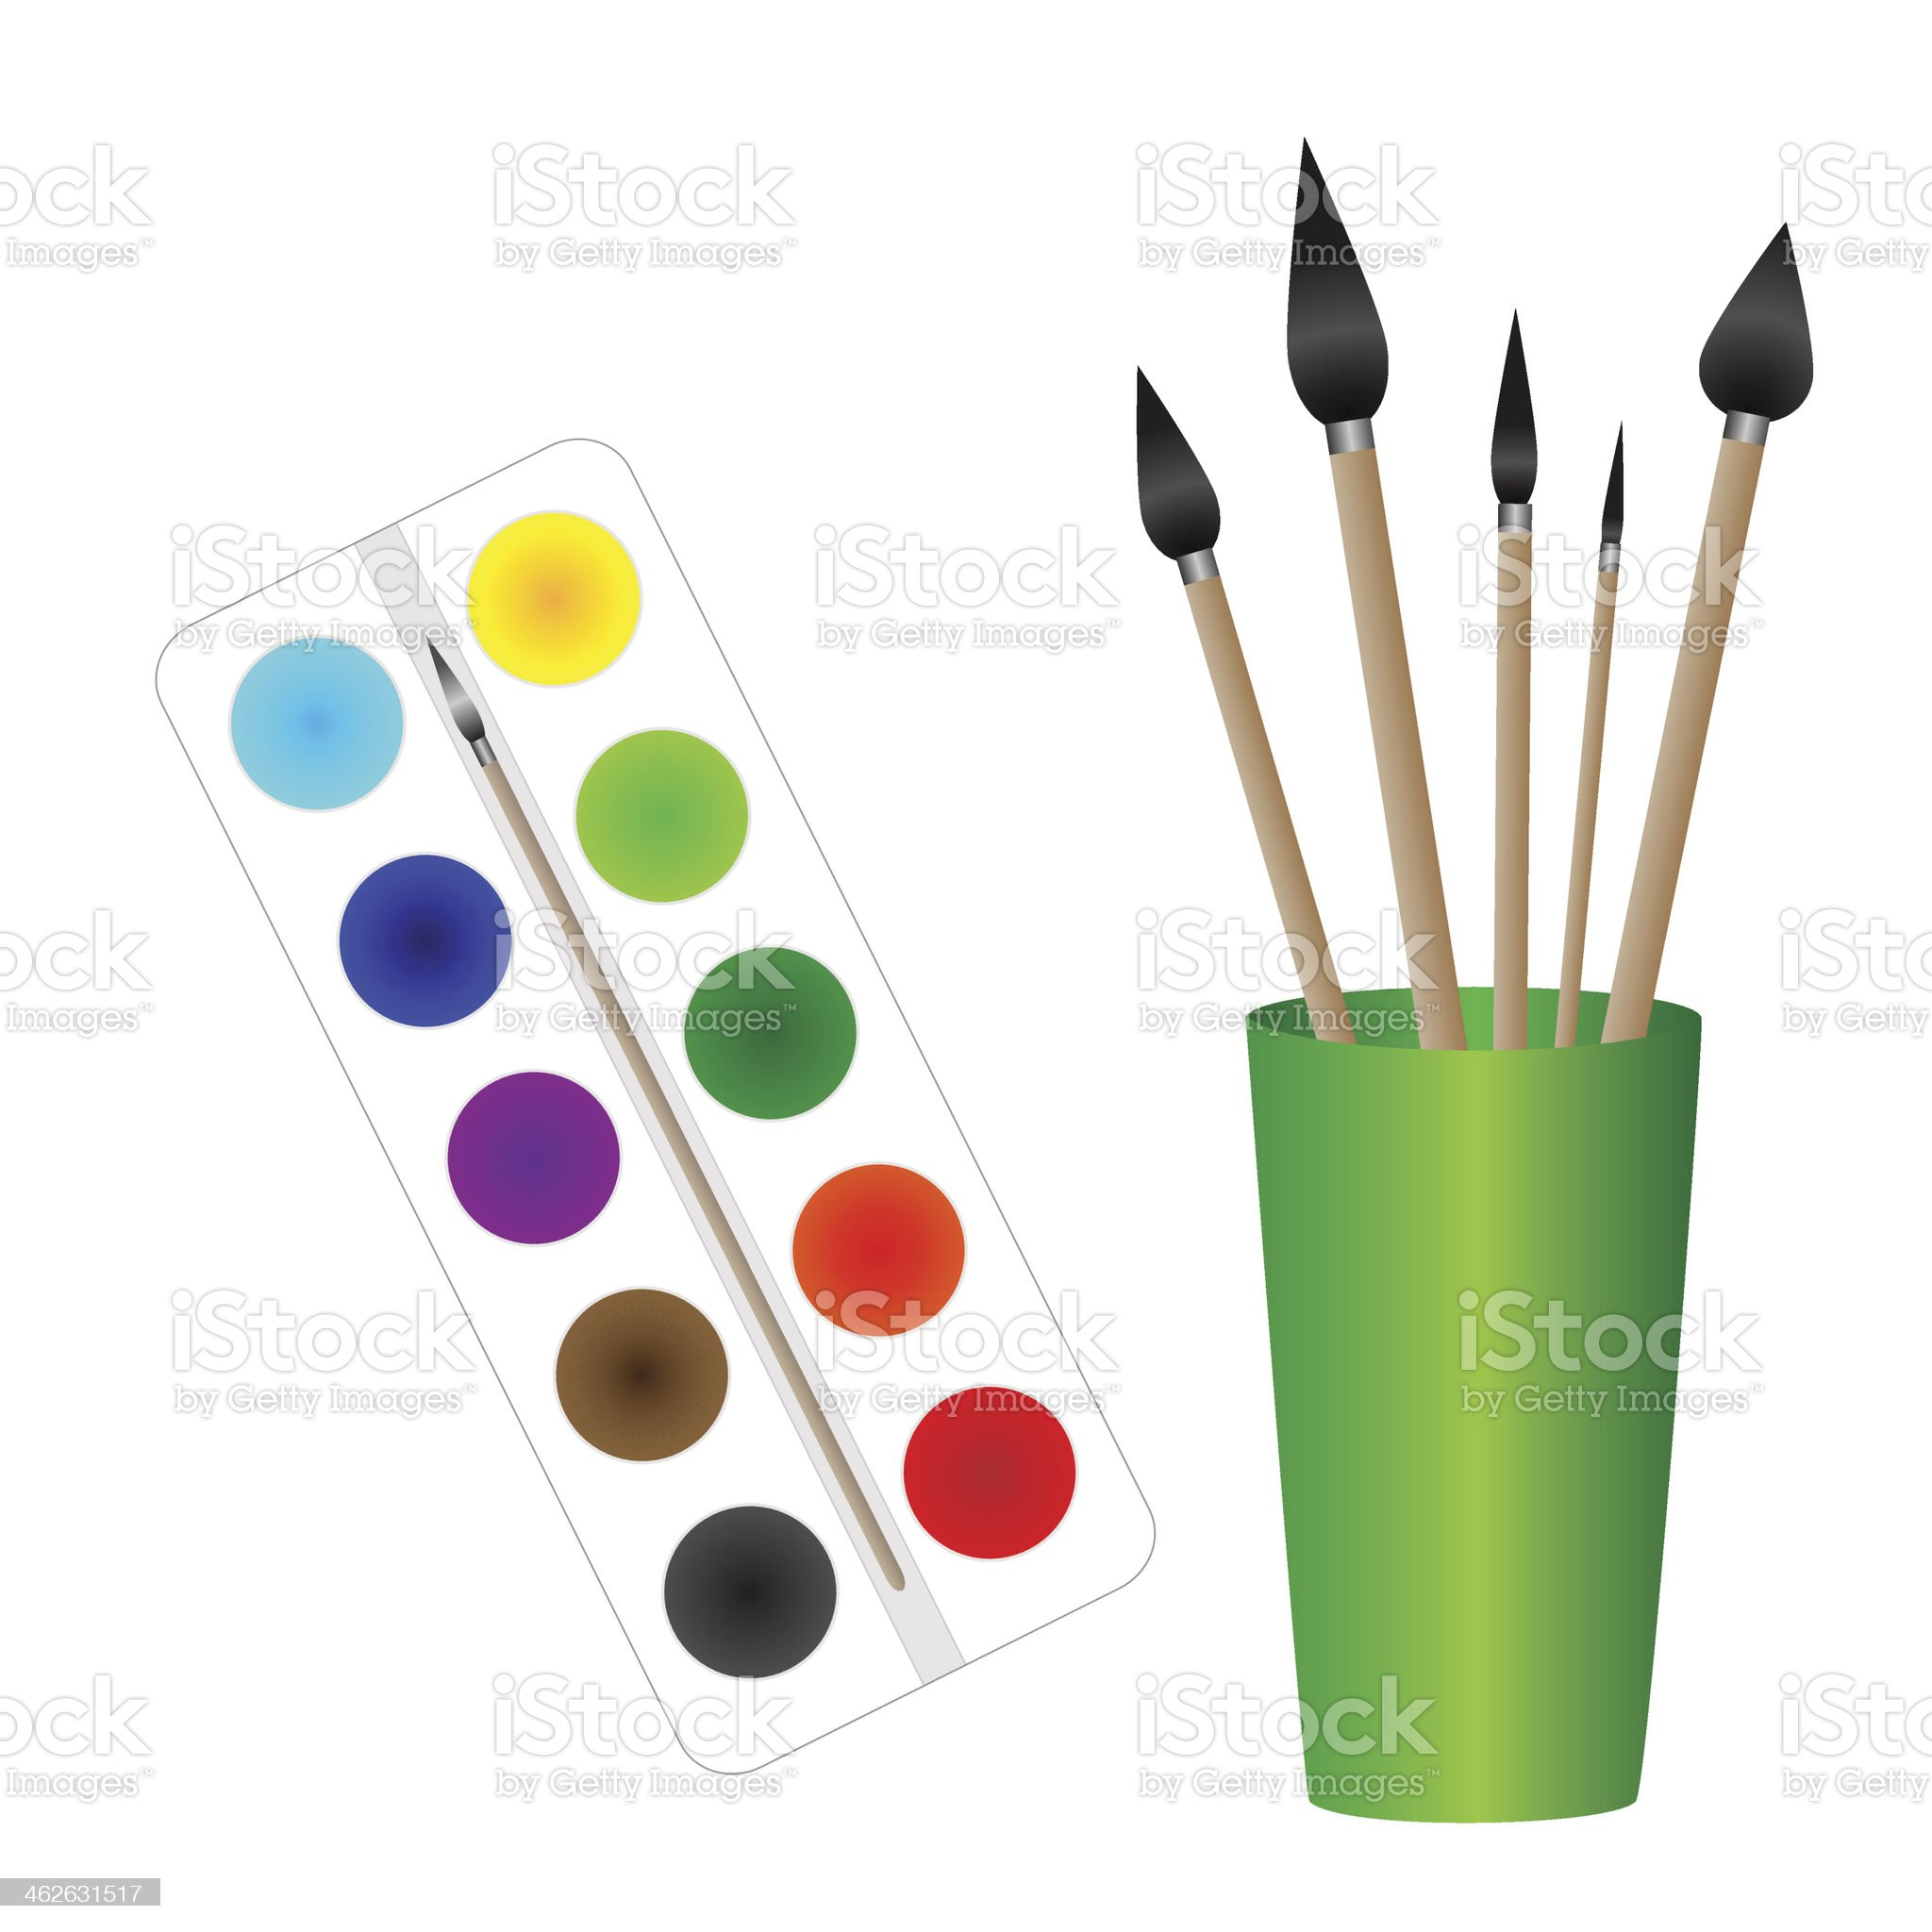 paints and brushes royalty-free stock vector art